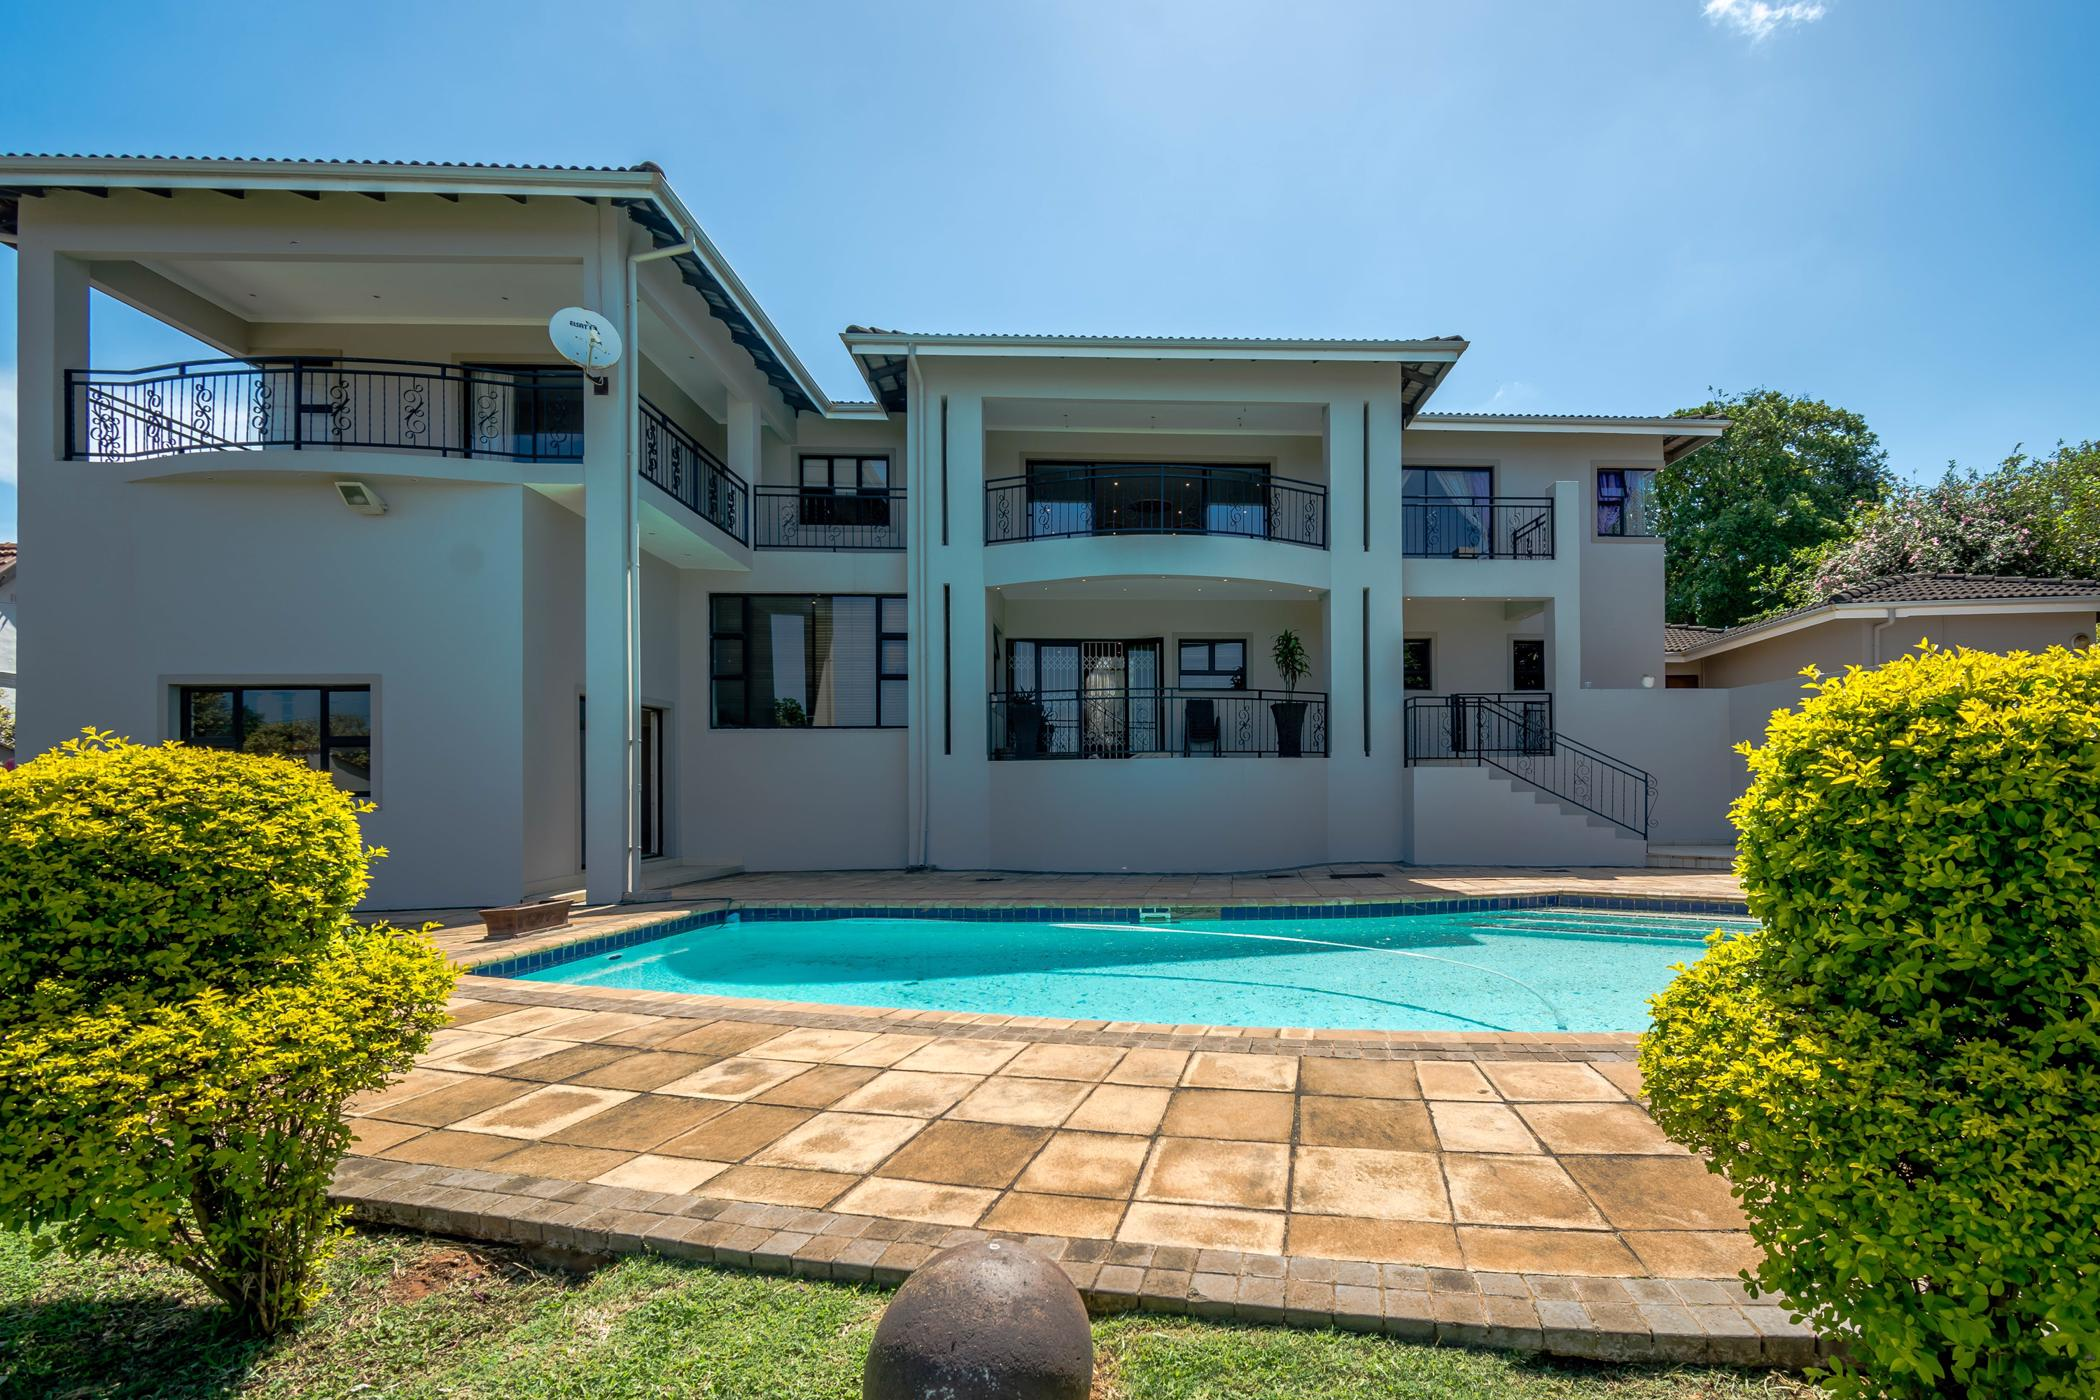 5 Bedroom House For Sale   Durban North   1ND1418517   Pam